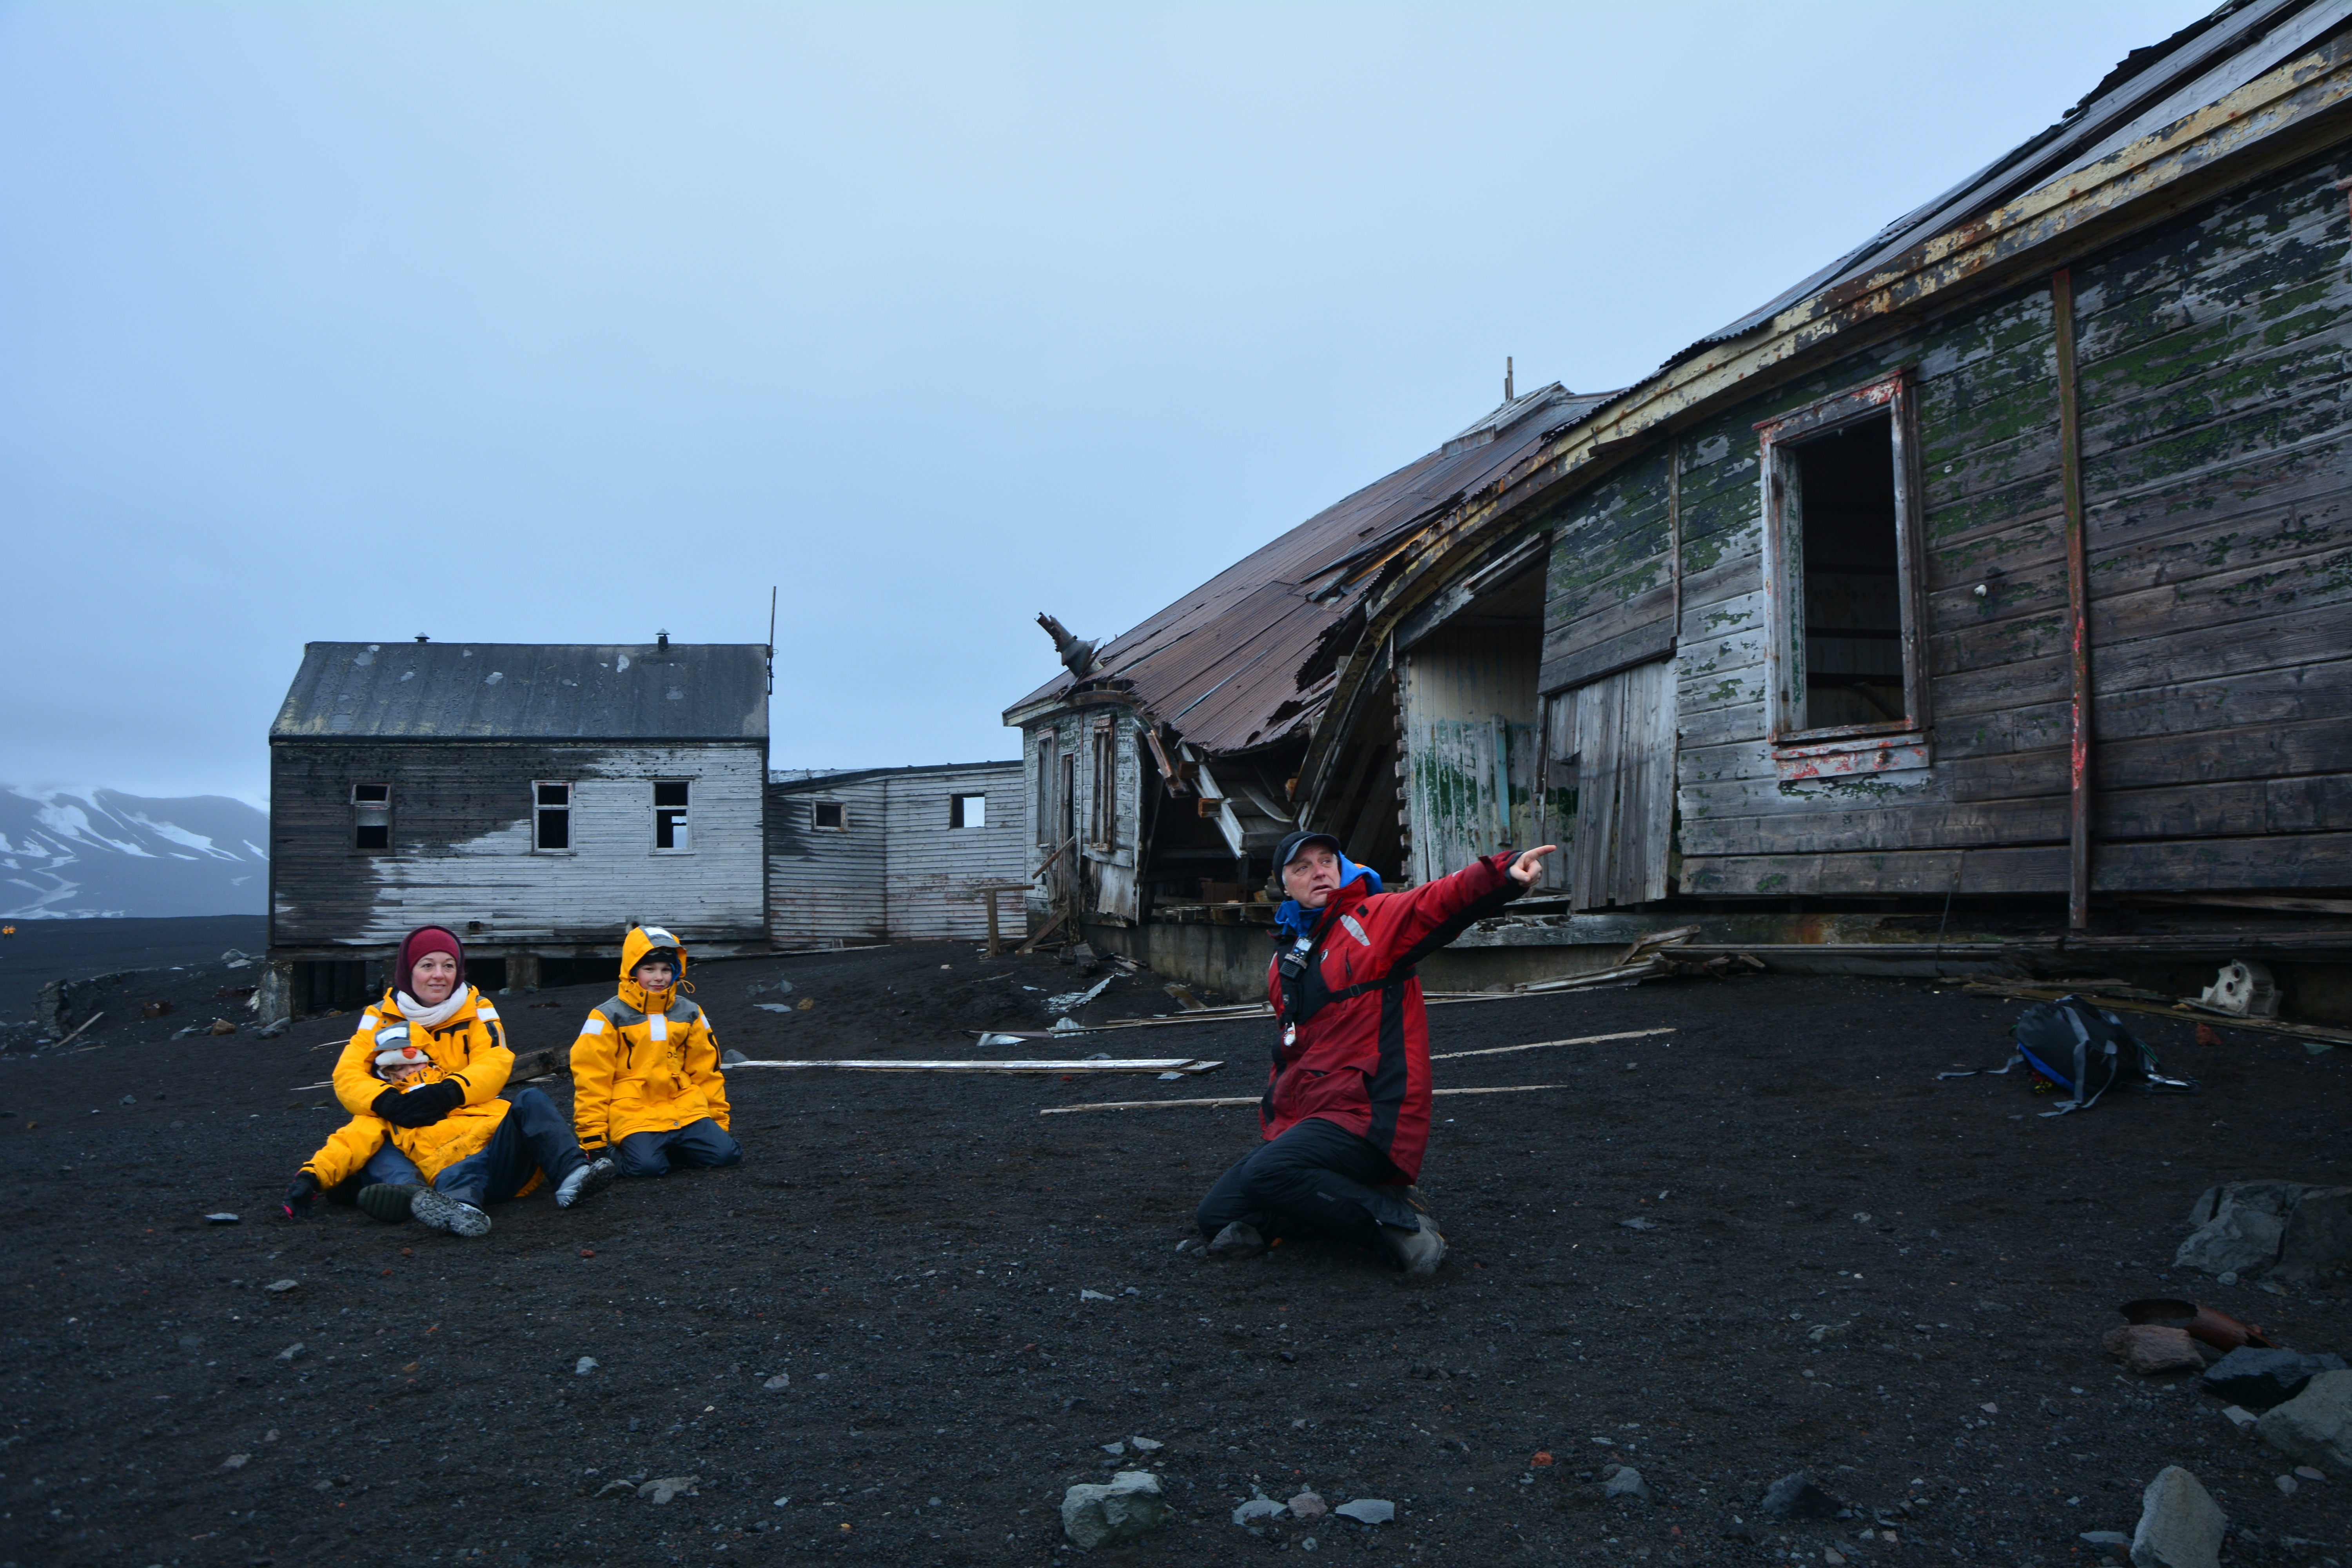 Open_air_class_room_Deception_island.jpg